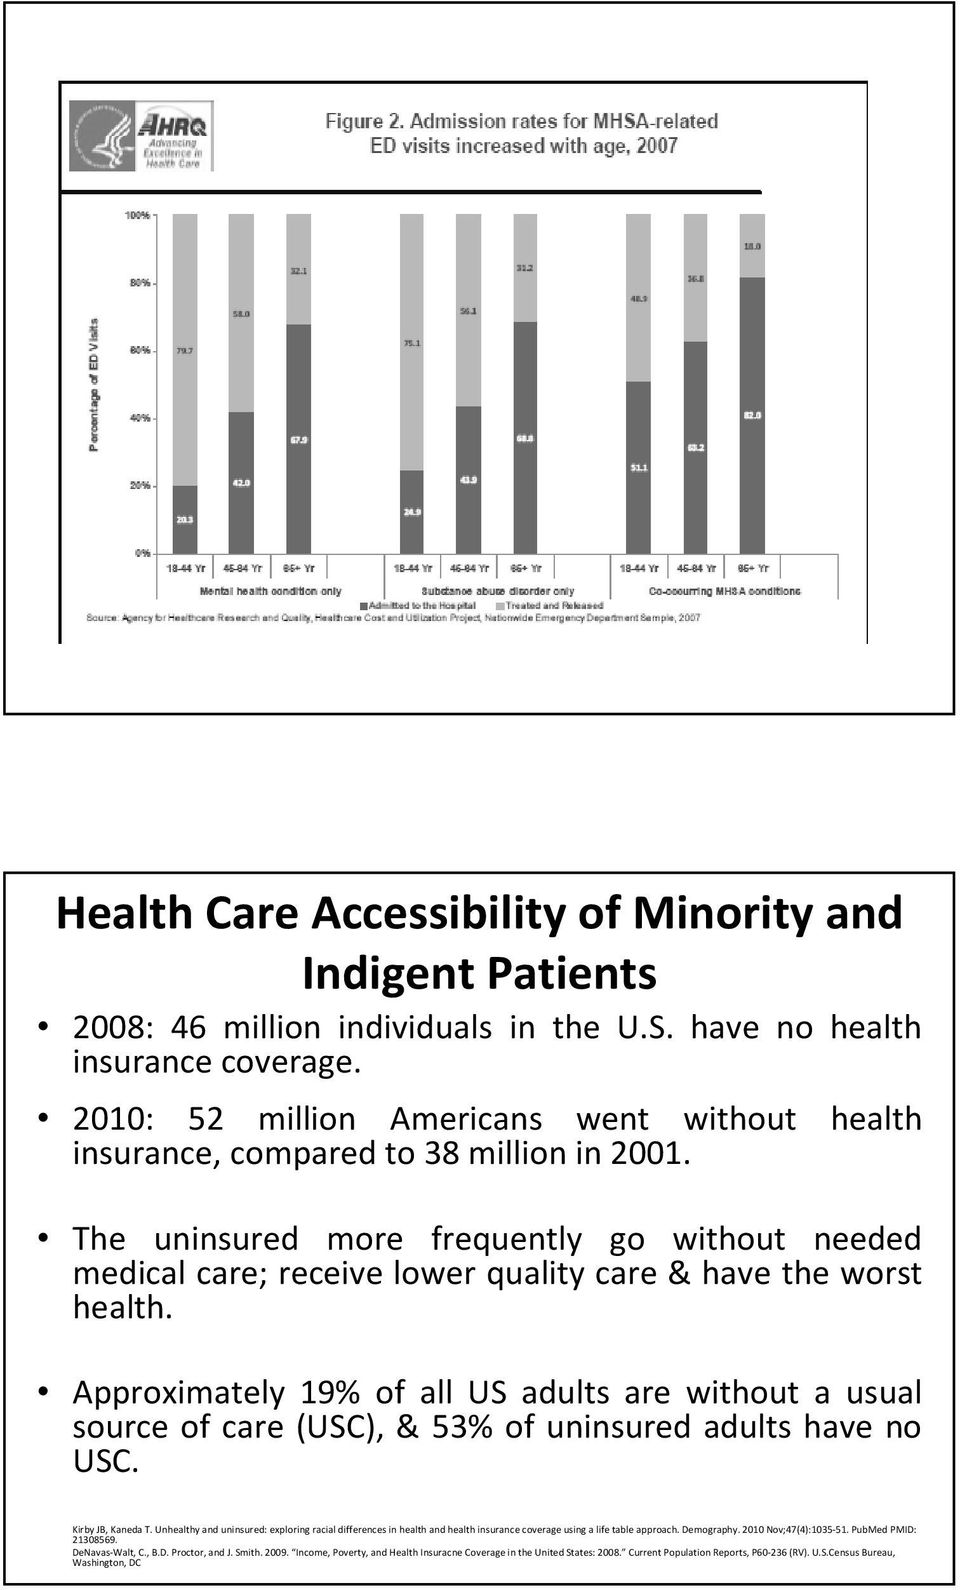 The uninsured more frequently go without needed medical care; receive lower quality care & have the worst health.